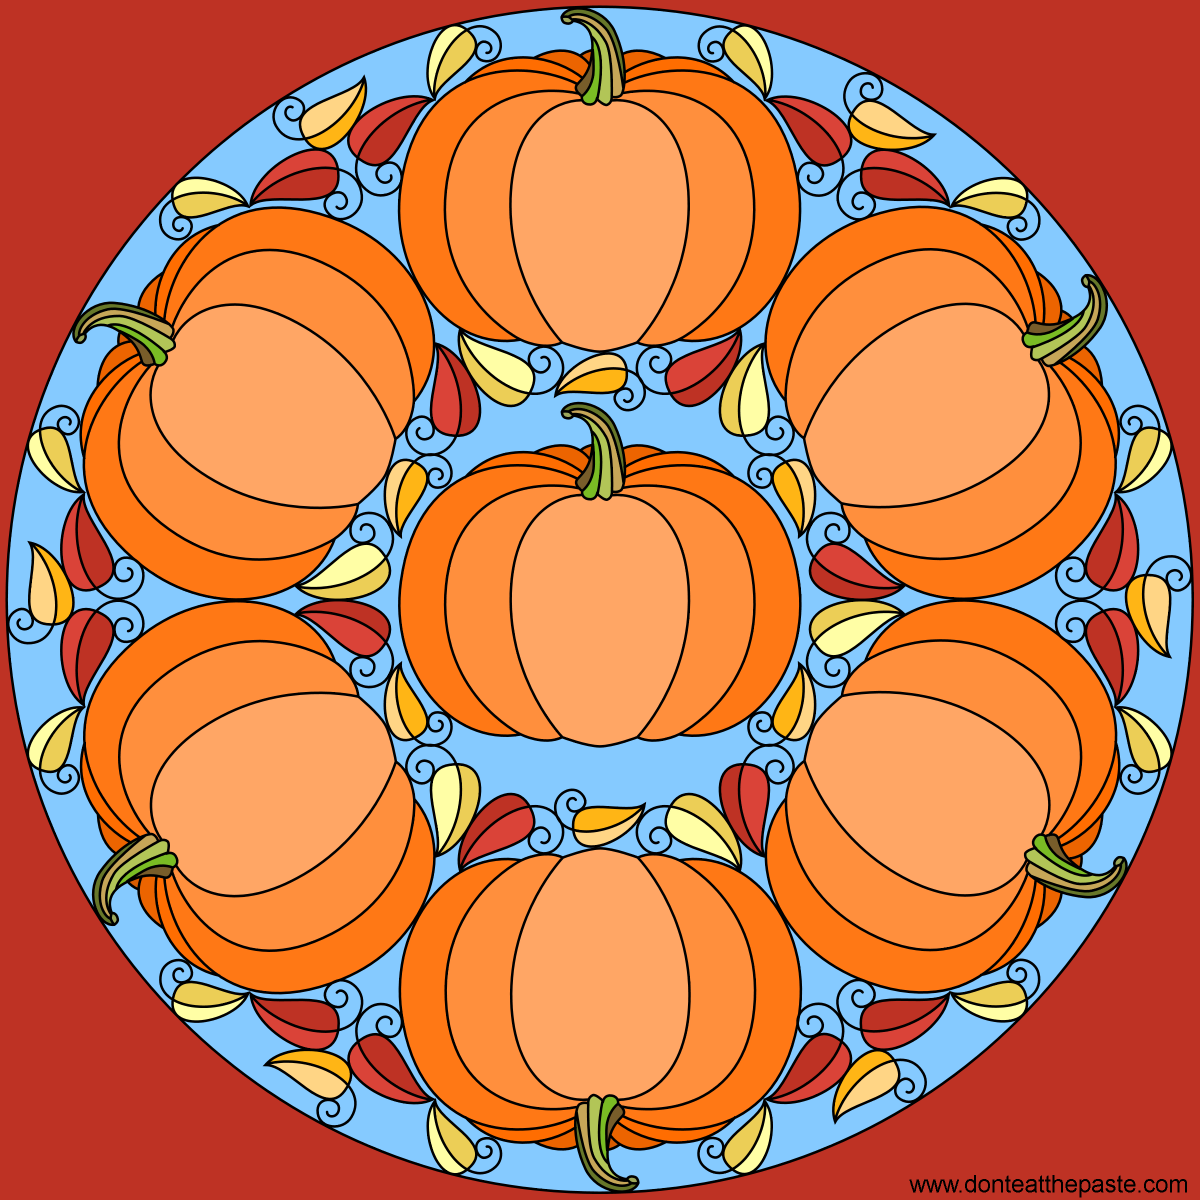 Pumpkin mandala for autumn- blank version available to color